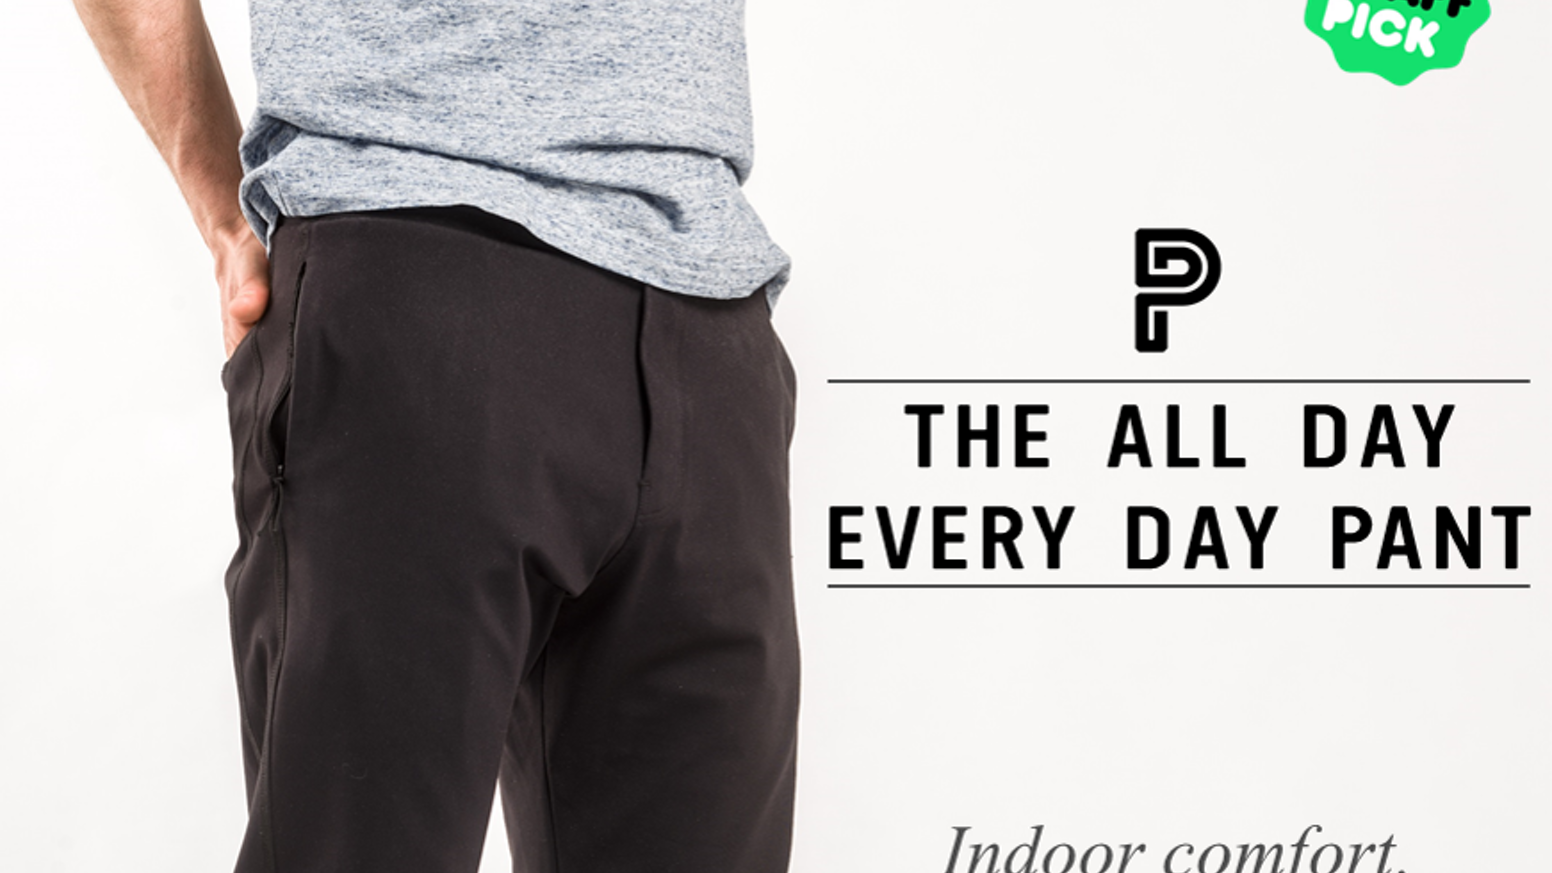 A more stylish alternative to sweatpants, a more comfortable alternative to jeans.